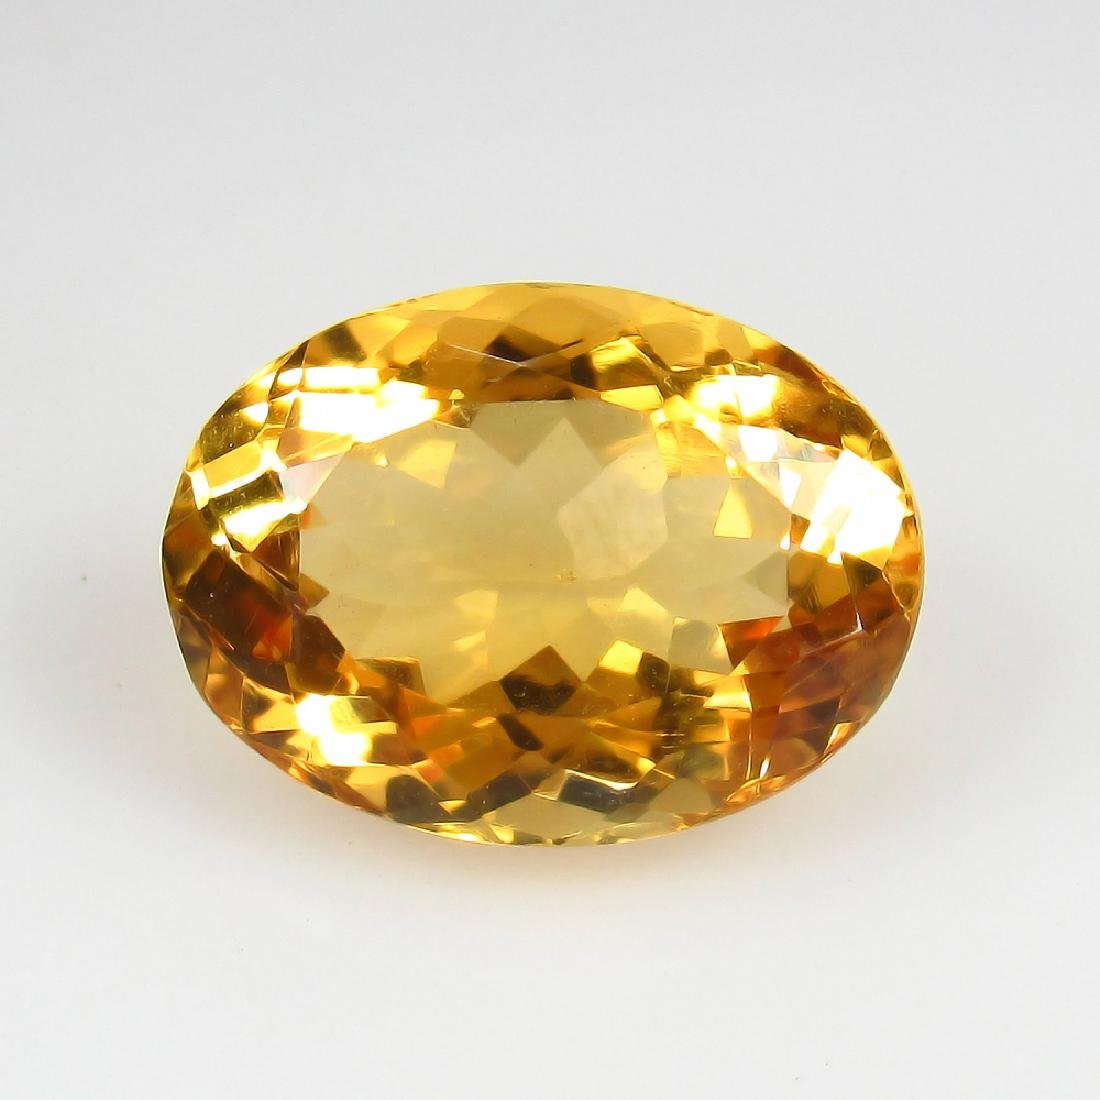 5.47 Ct Genuine Loose Citrine Excellent Oval Cut